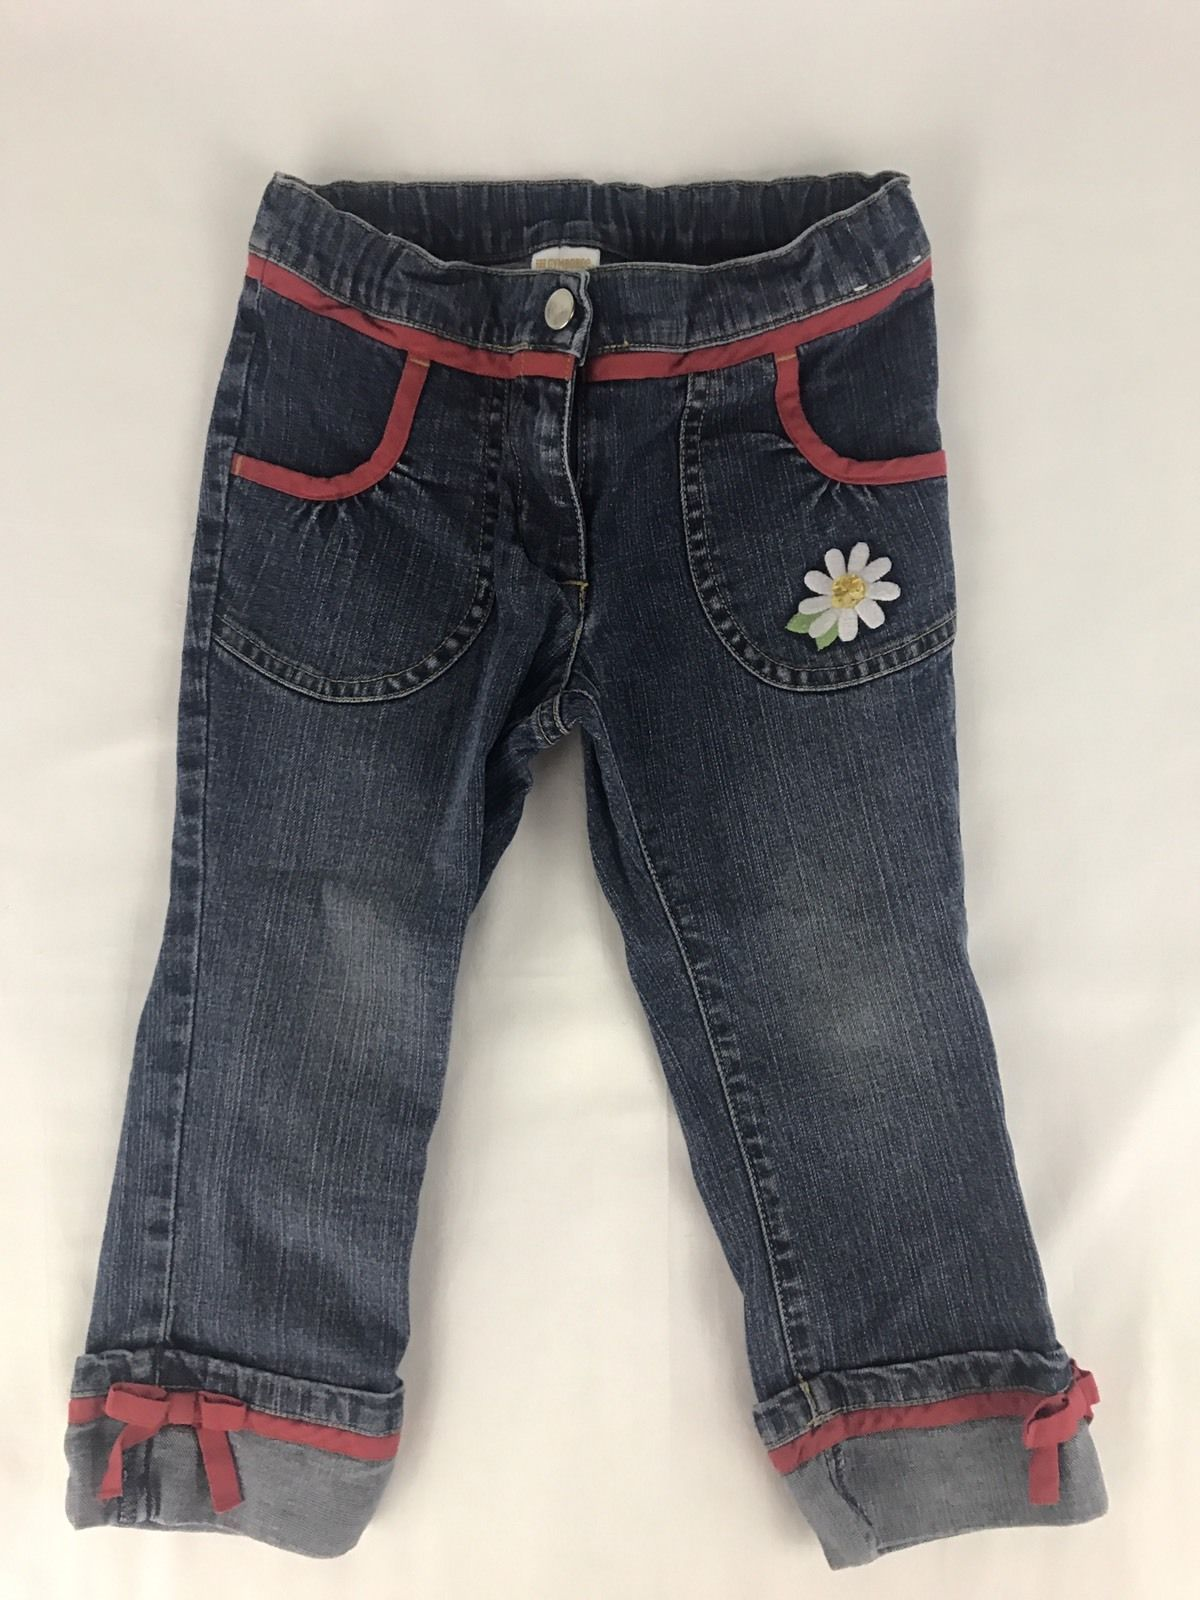 Primary image for Gymboree Wish You Were Here Red Trim Daisy Jeans Girls Size 4